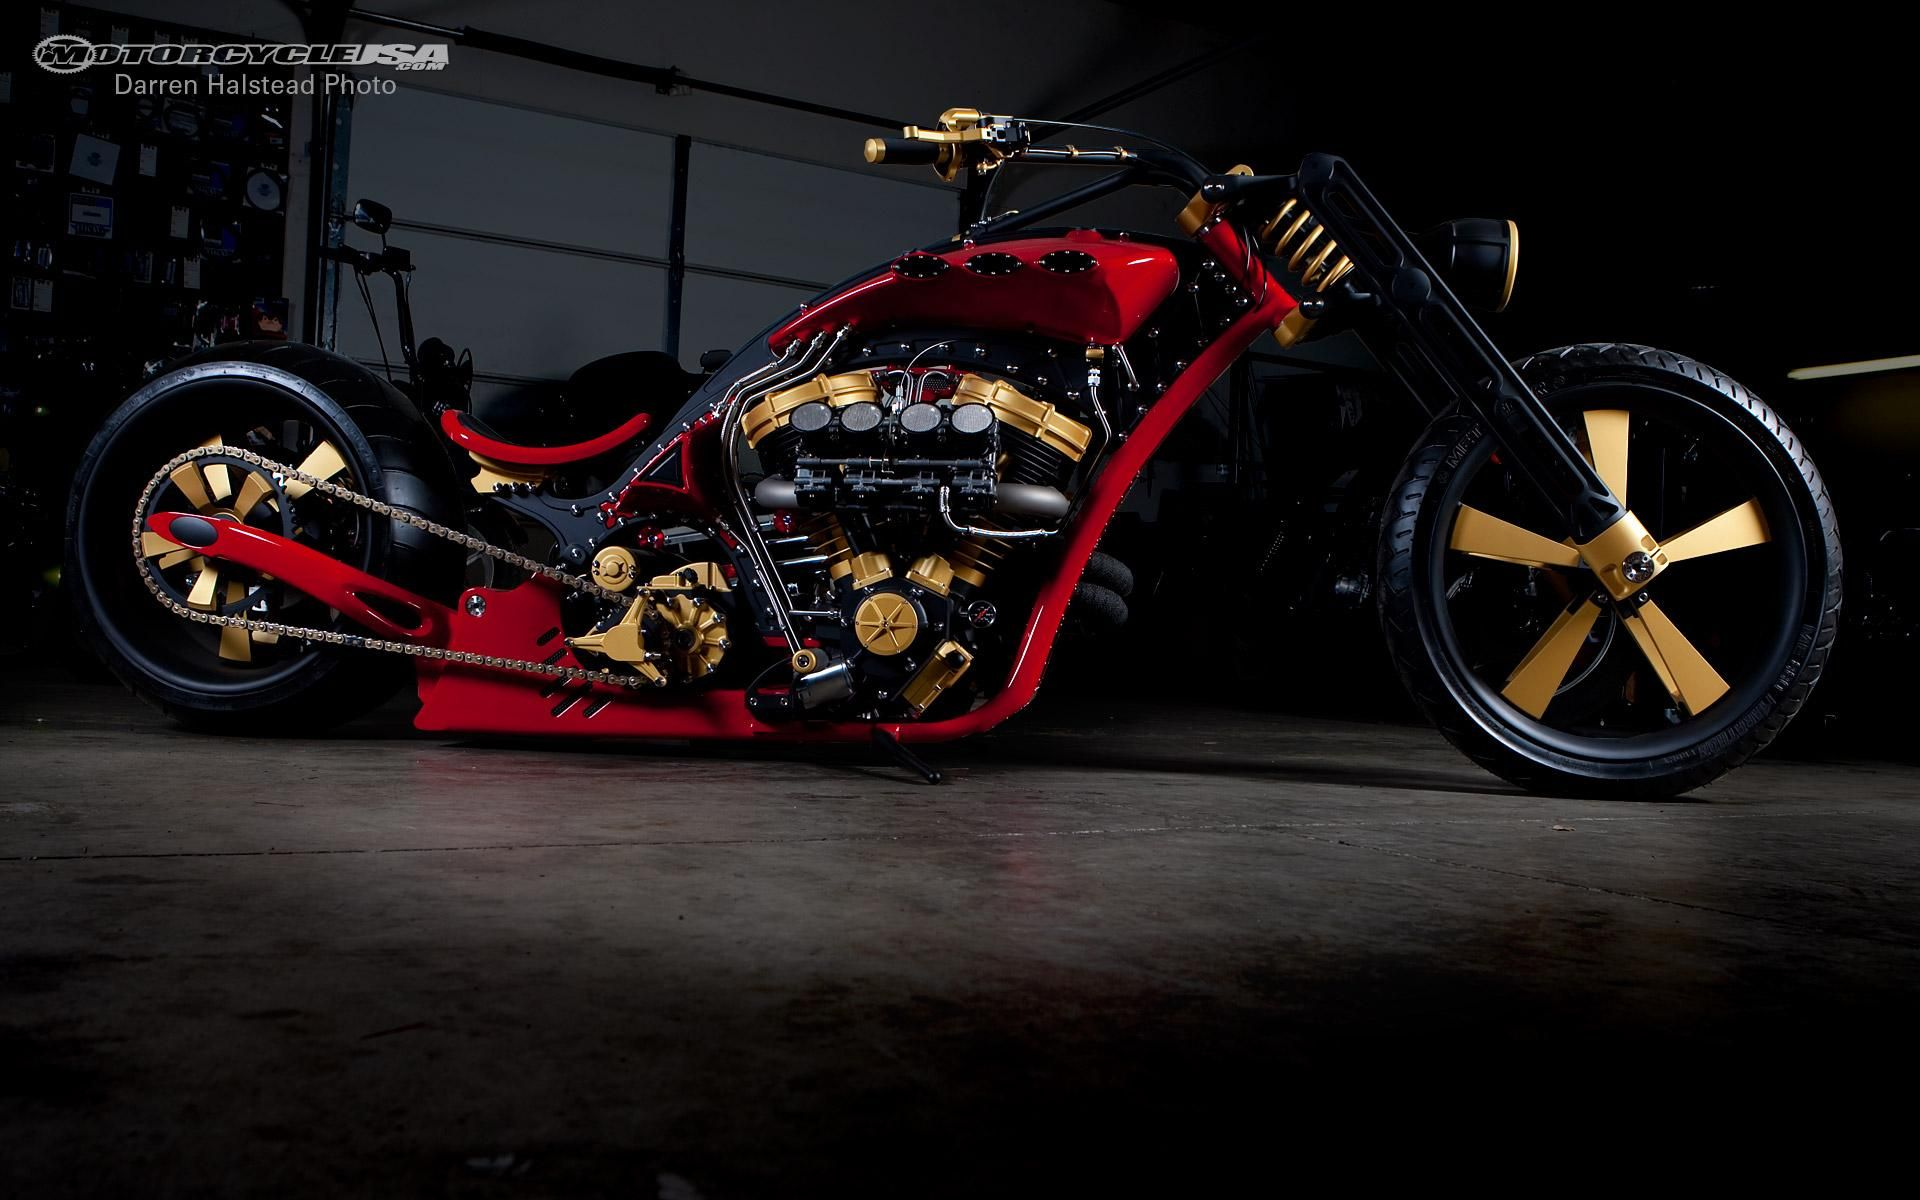 Harley Davidson Wallpaper Hd Custom Motorcycles Chopper Motorcycle Wallpaper Harley Davidson Wallpaper